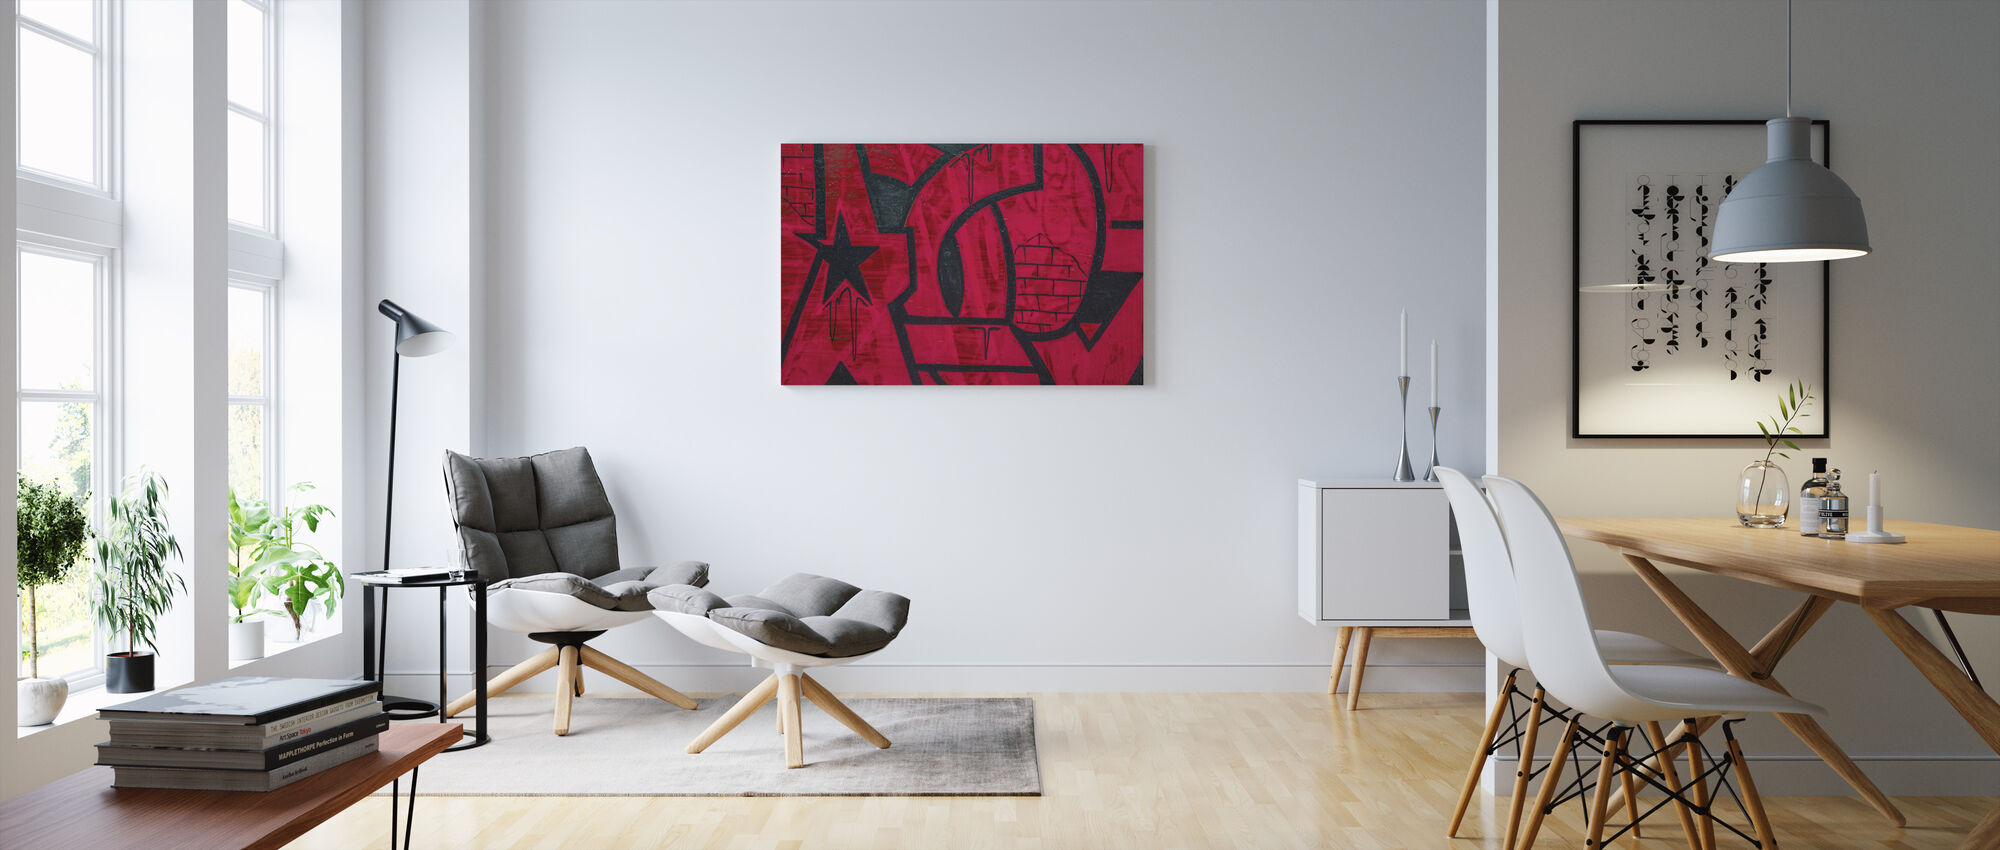 Red Detail from Graffiti Wall - Canvas print - Living Room